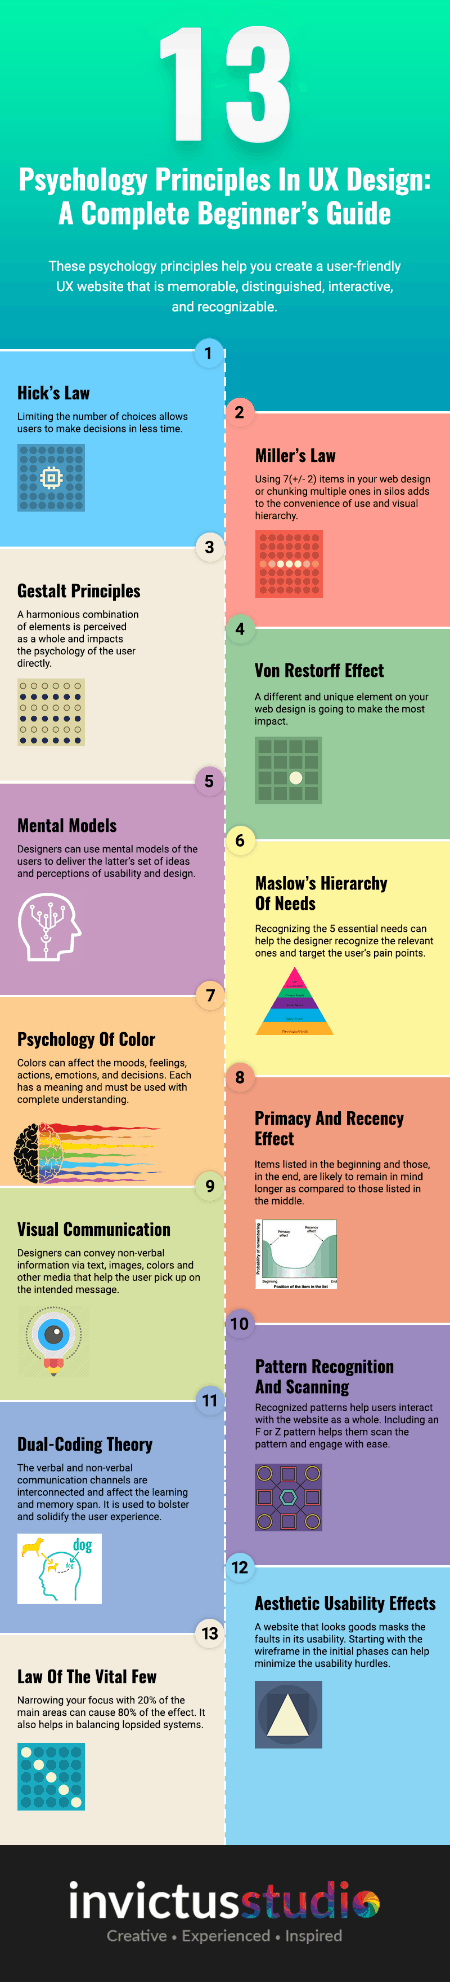 13 Psychology Principles